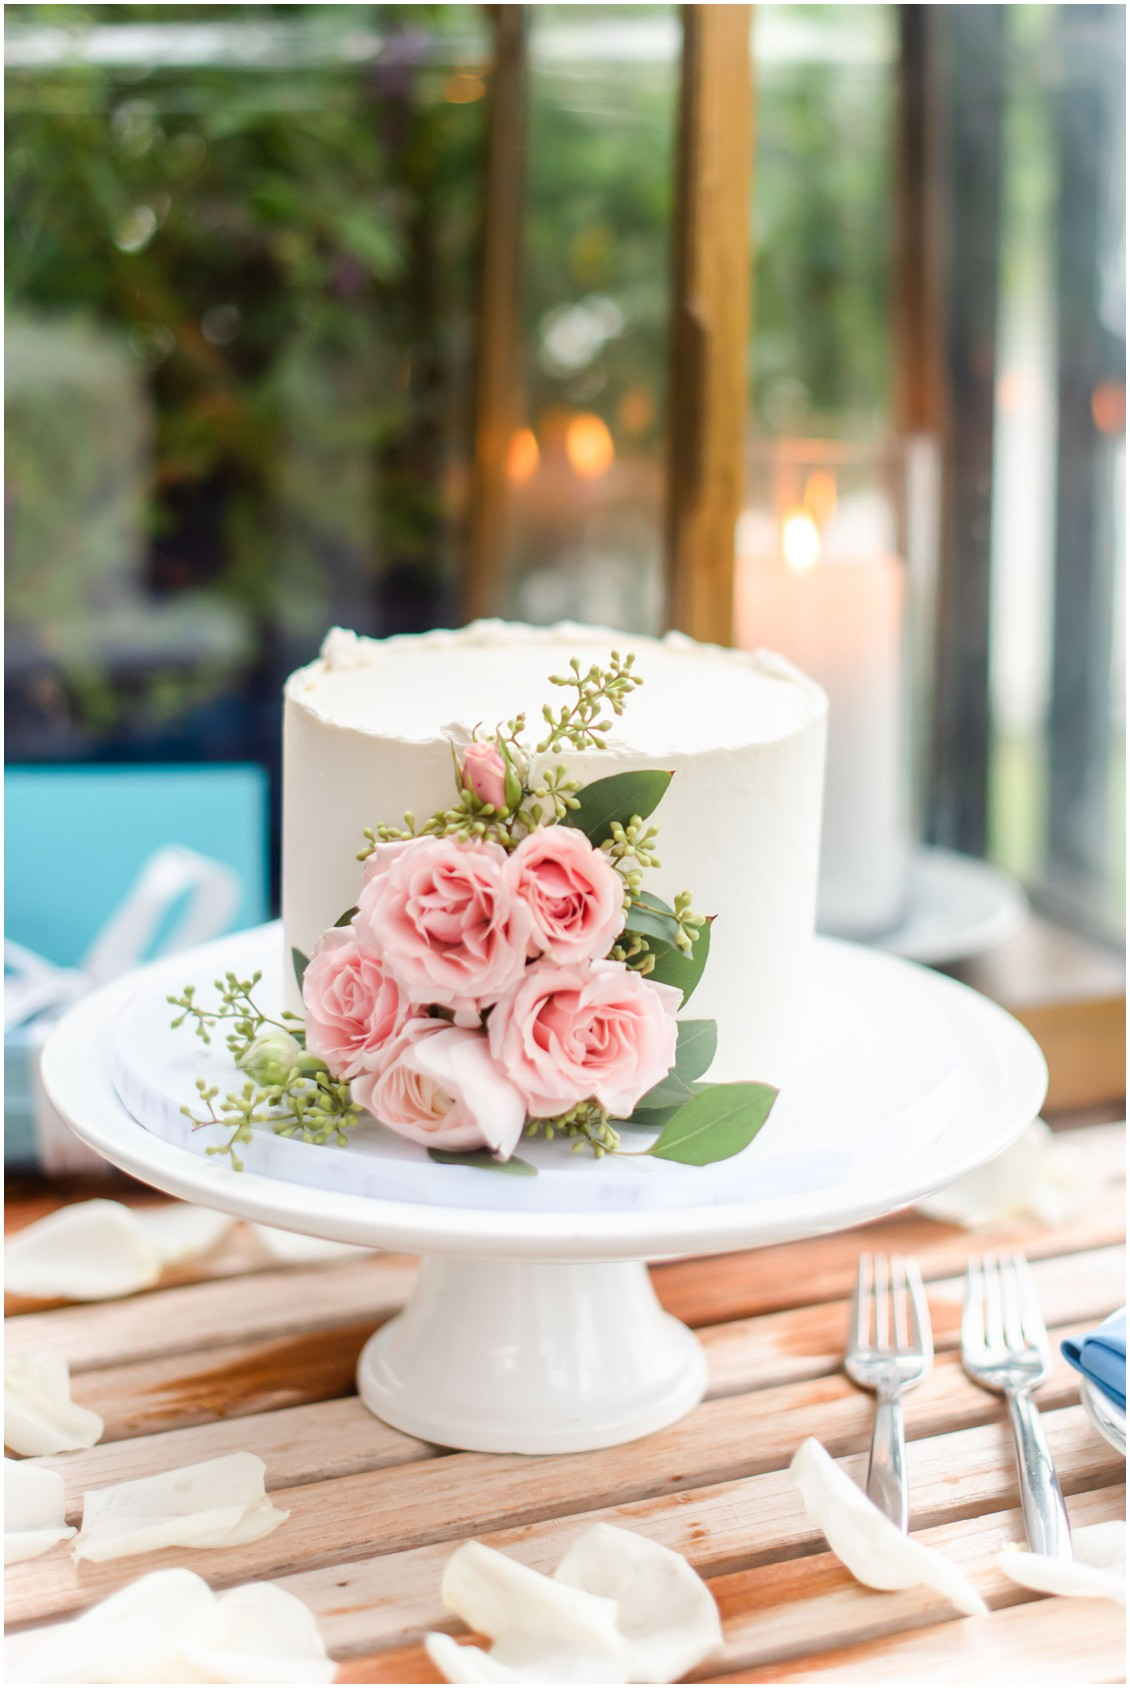 Cake for two romantic elopement| My Eastern Shore Wedding | Alexandra Kent Photography | Chesapeake Blooms | Steven Anthony Cakes